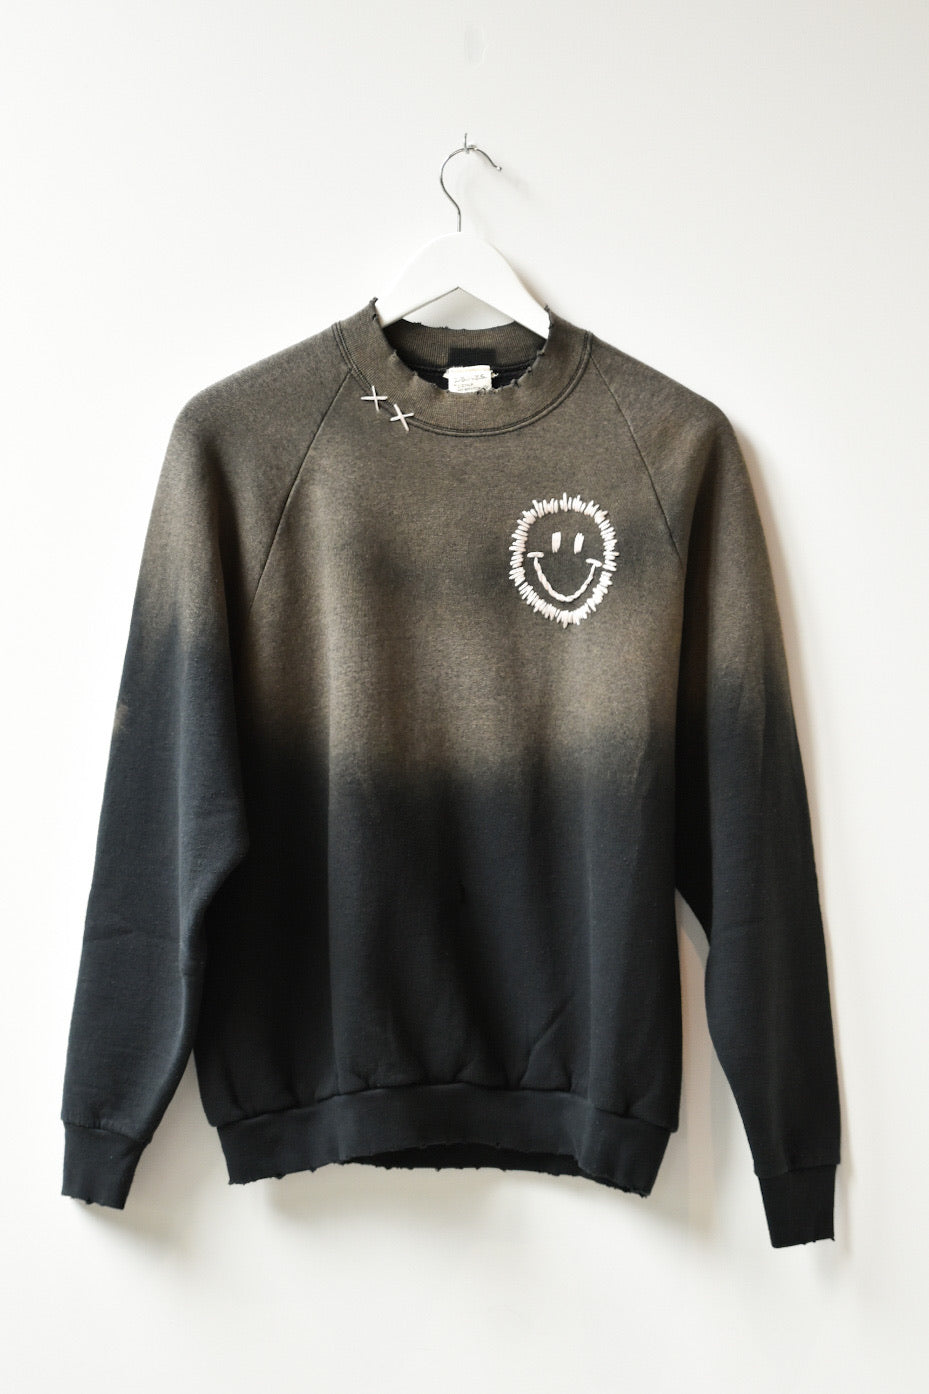 Happy Face Vintage Sweatshirt-Fade Black/White